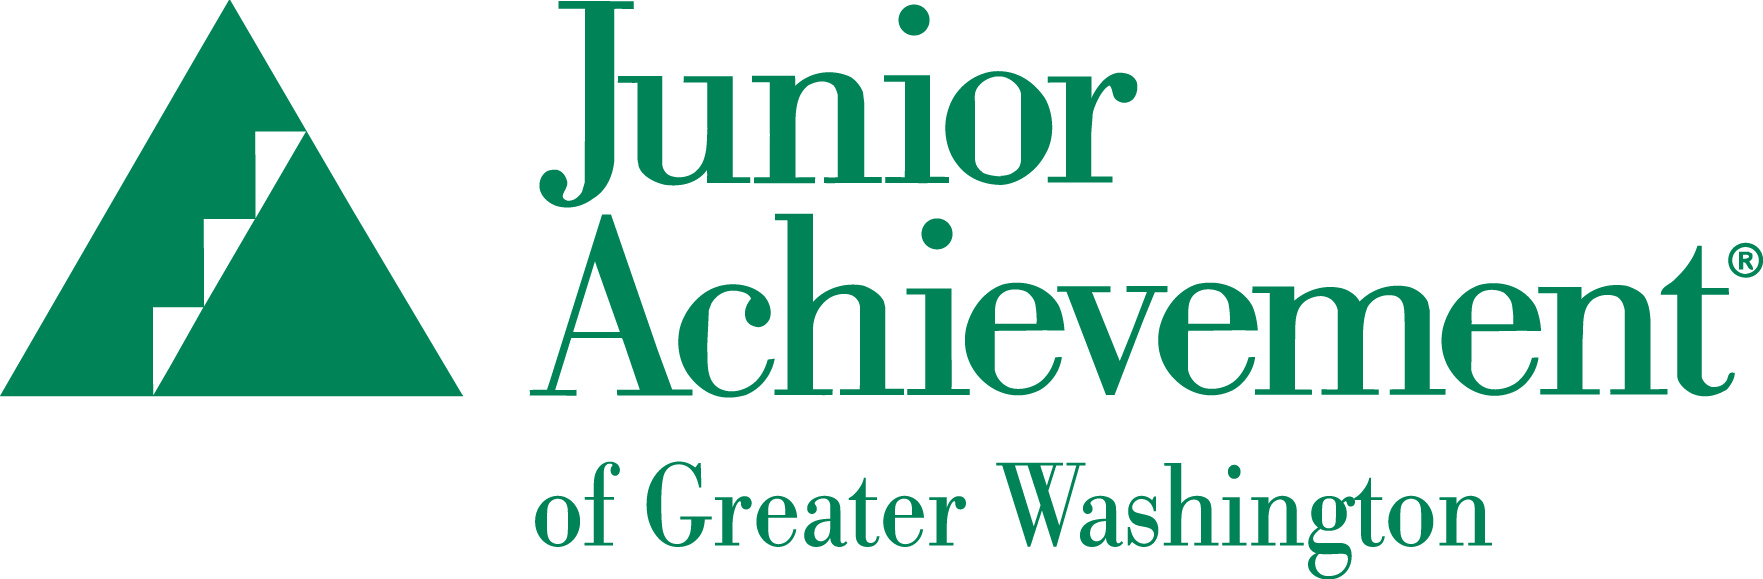 junior achievement of greater washington - logo image